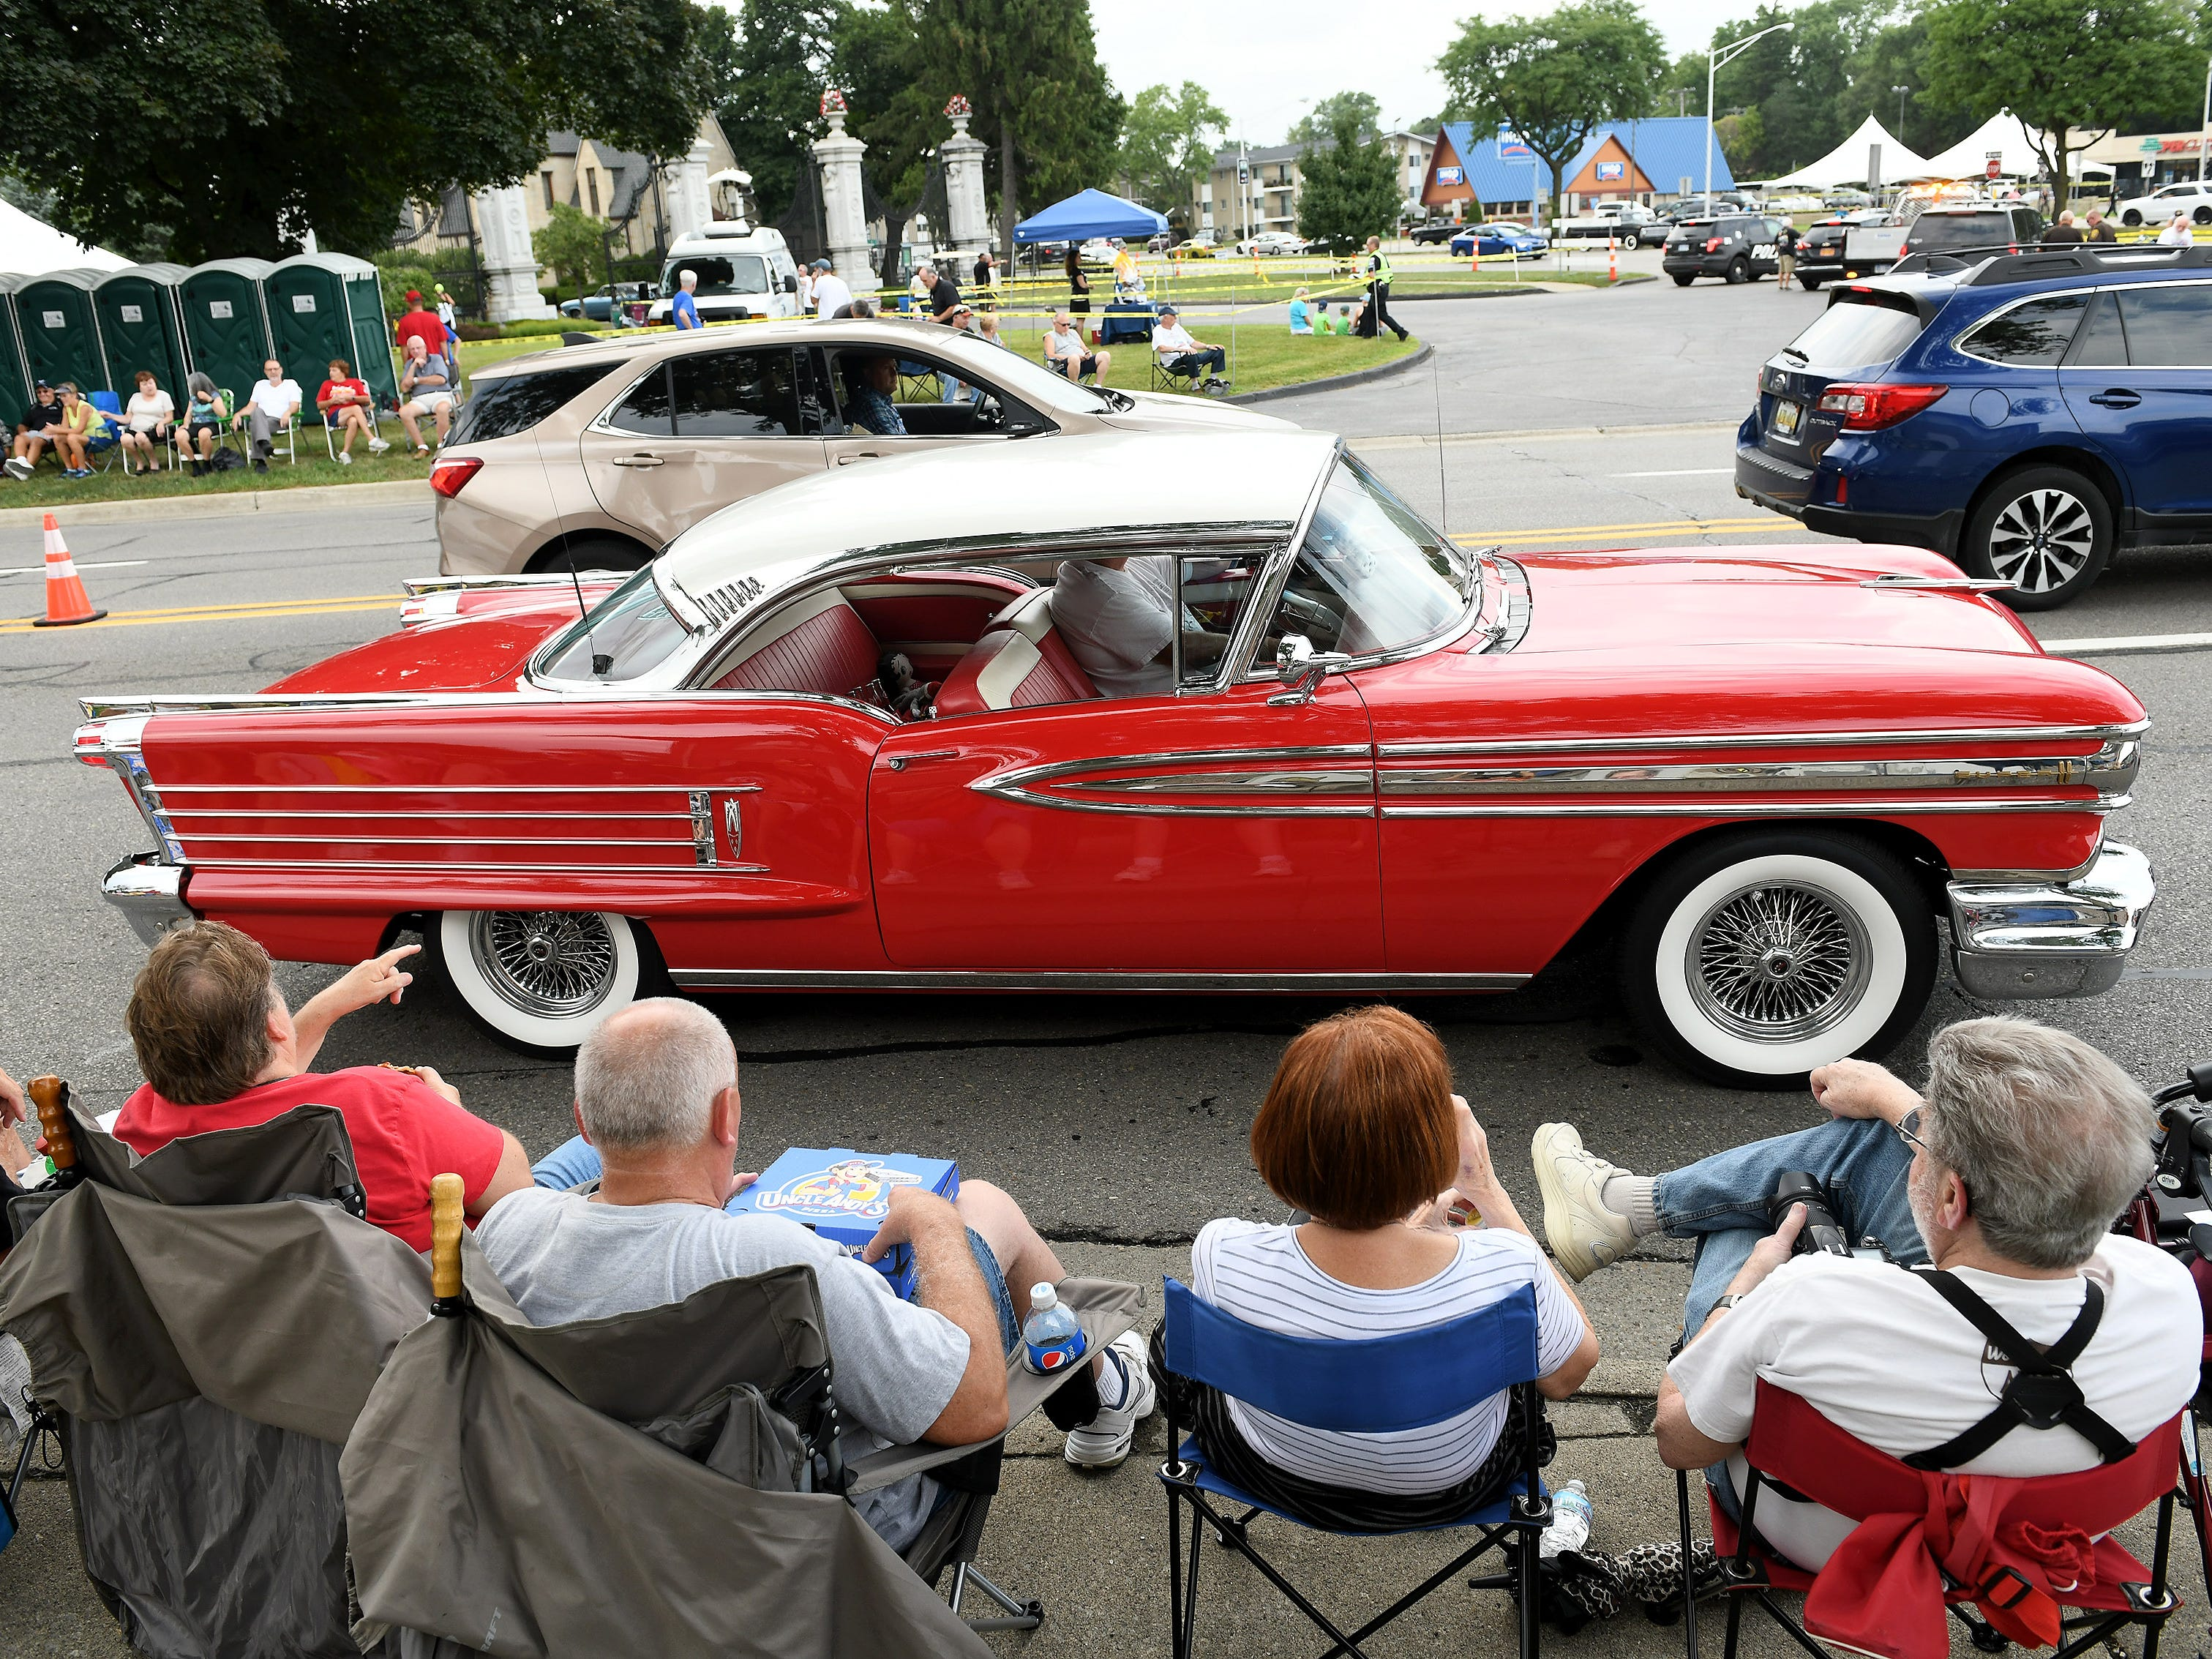 Spectators watch a classic Oldsmobile roll by on Woodward Friday night in Berkley.